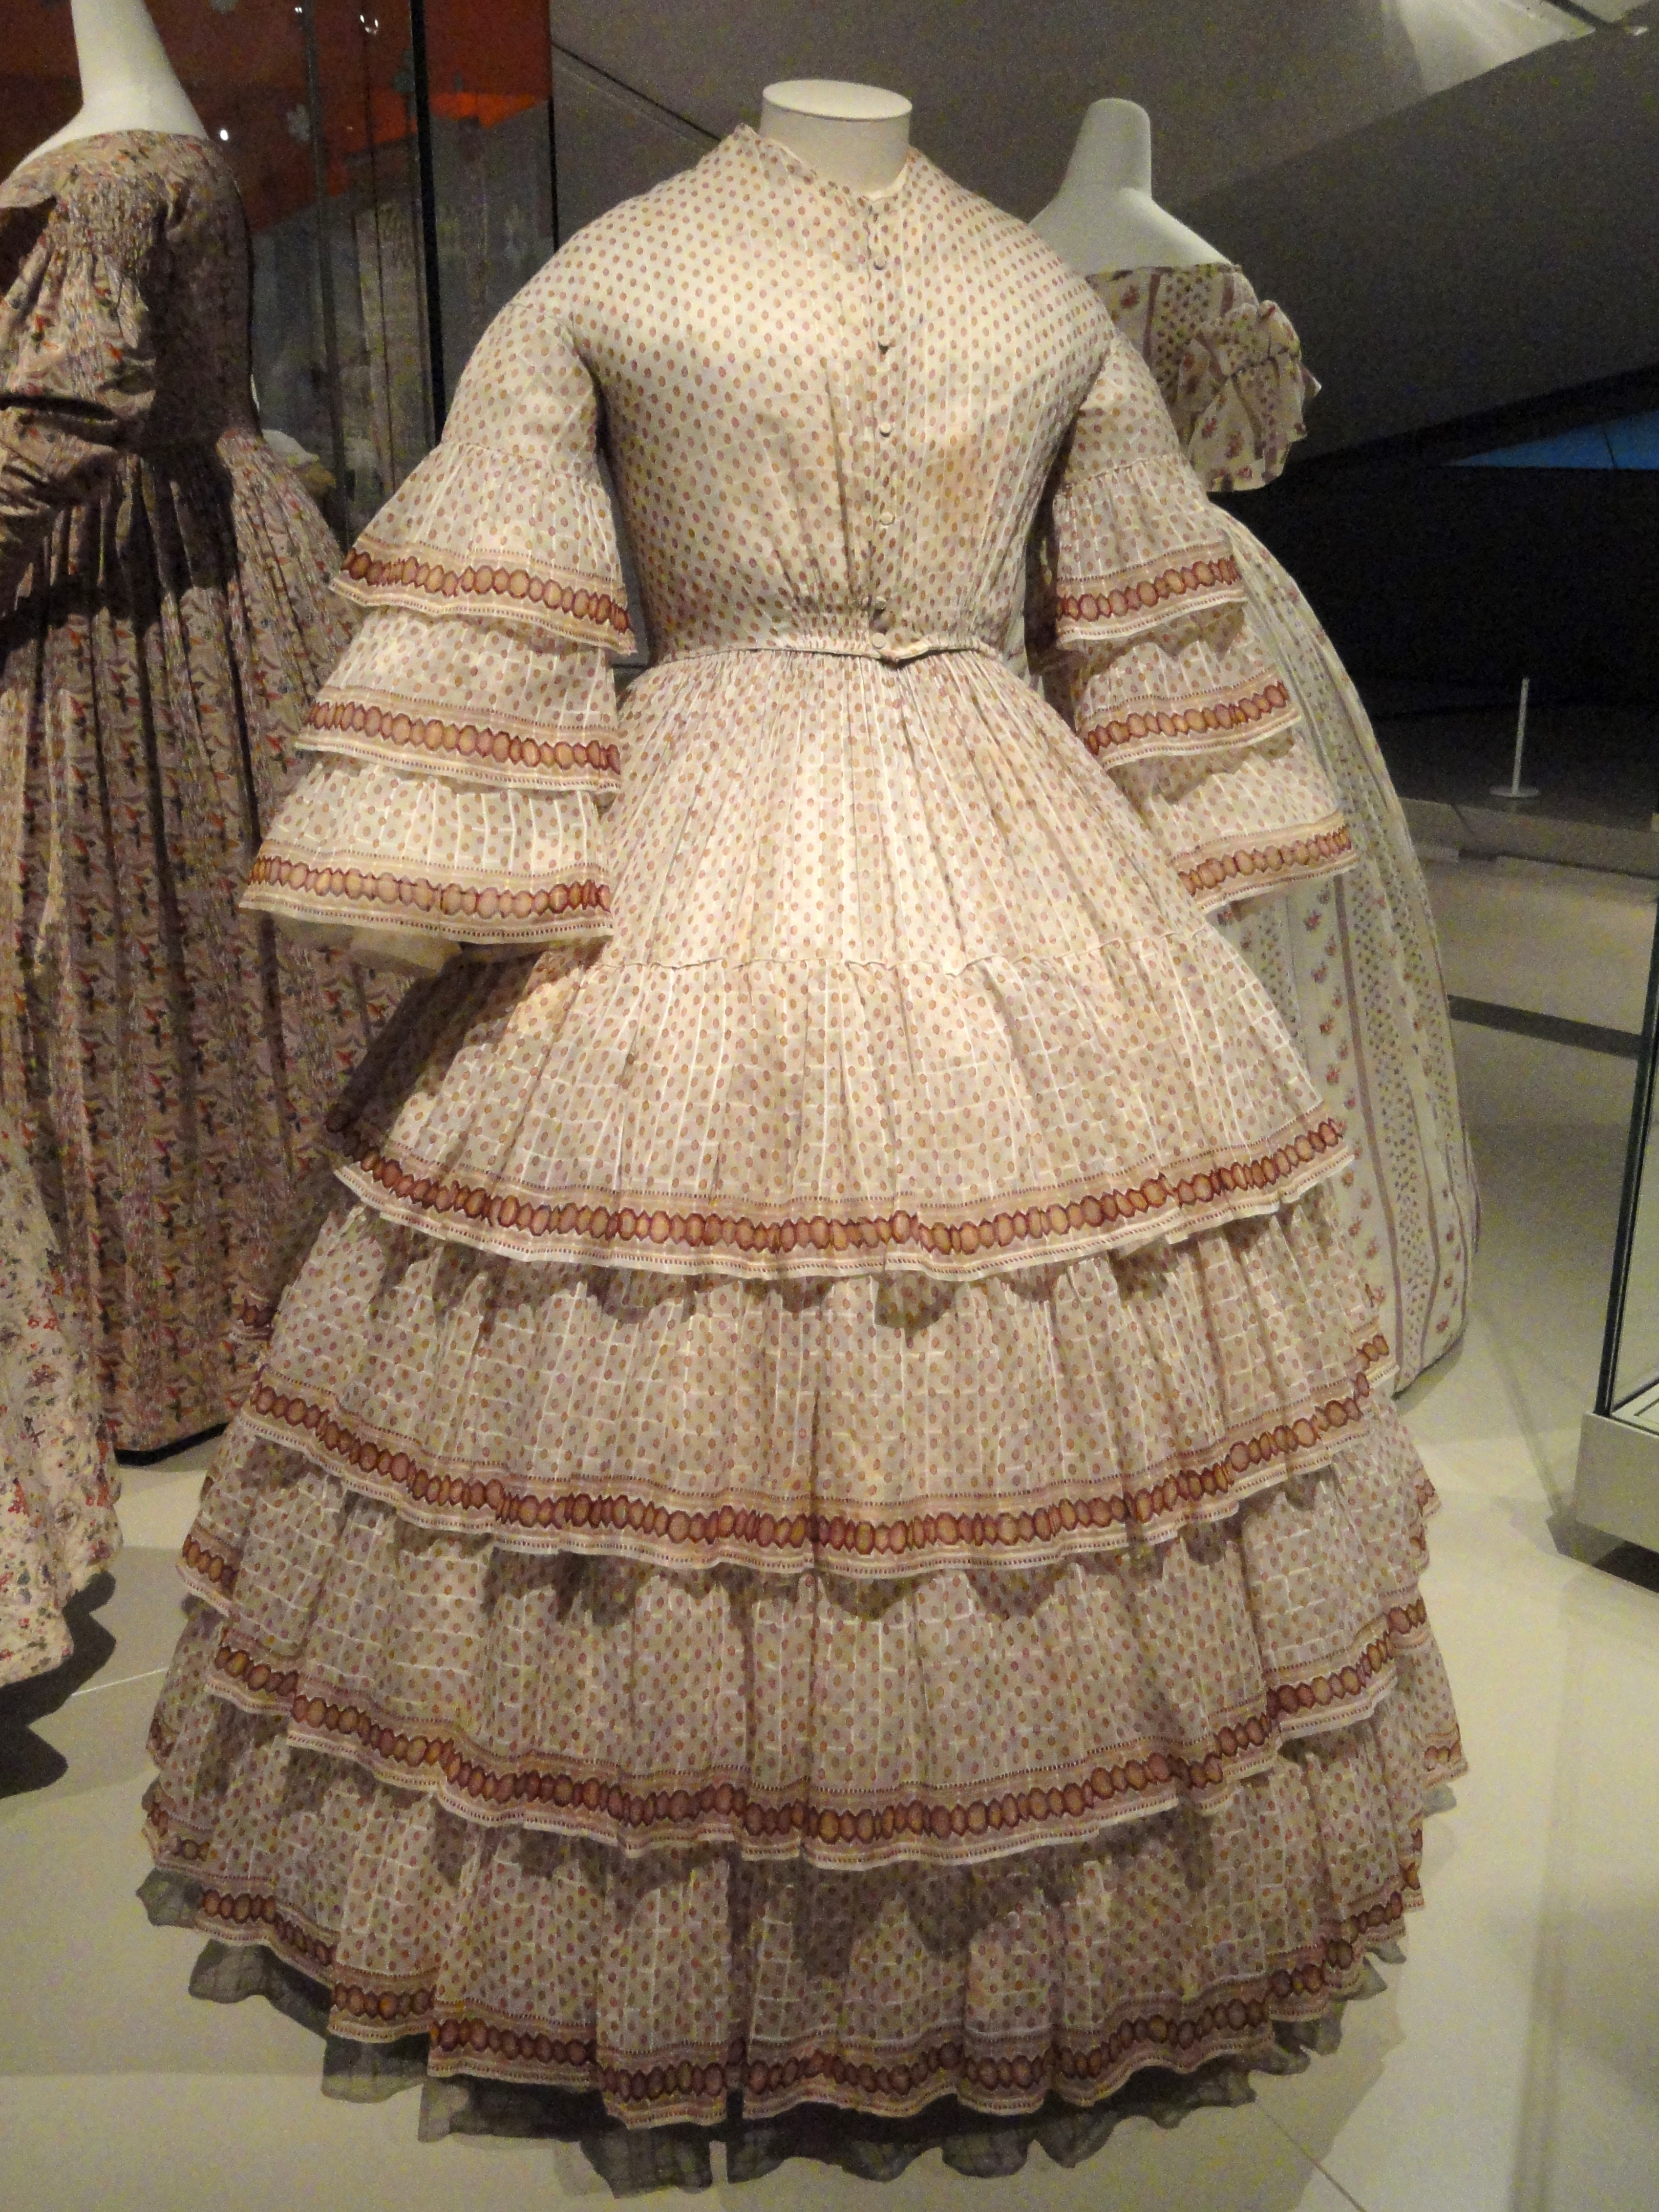 When Cotton was Banned: Indian Cotton Textiles in Early